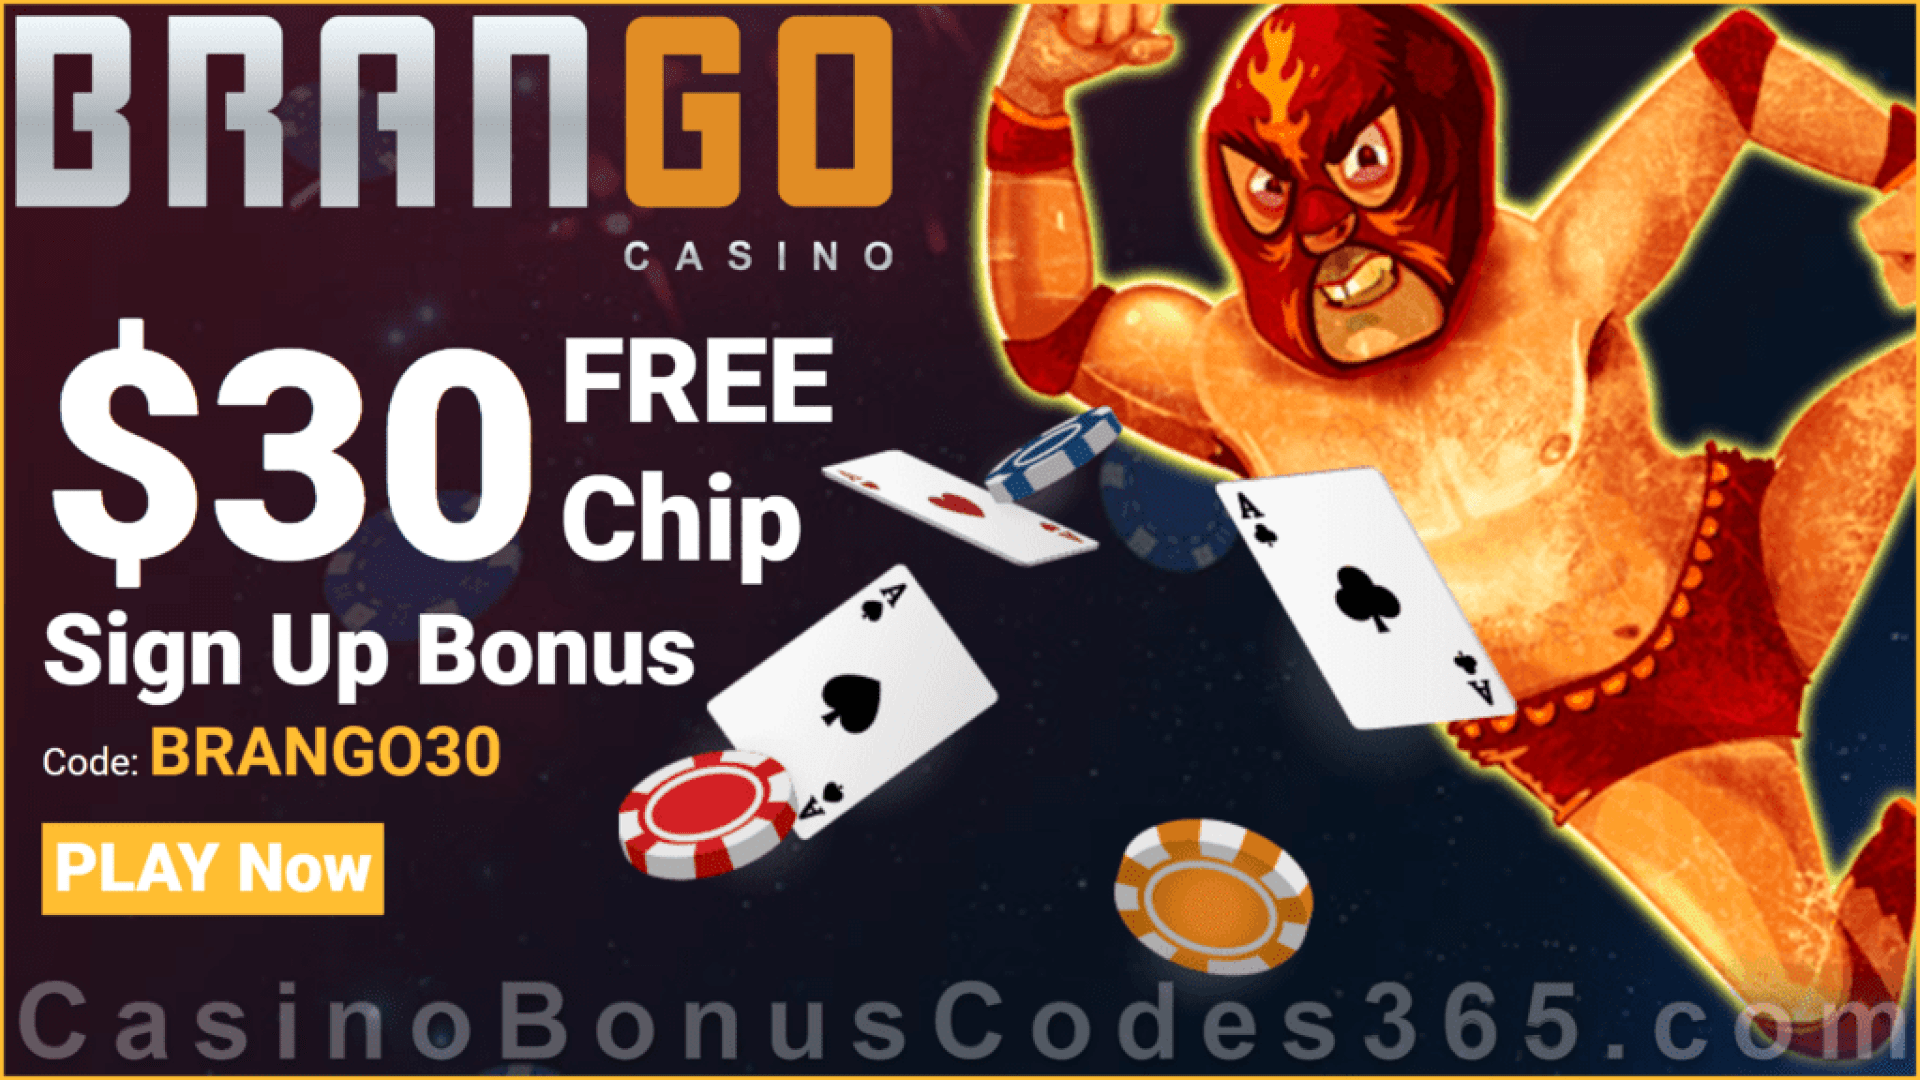 Casino Brango $30 FREE Chip Sign Up Bonus RTG